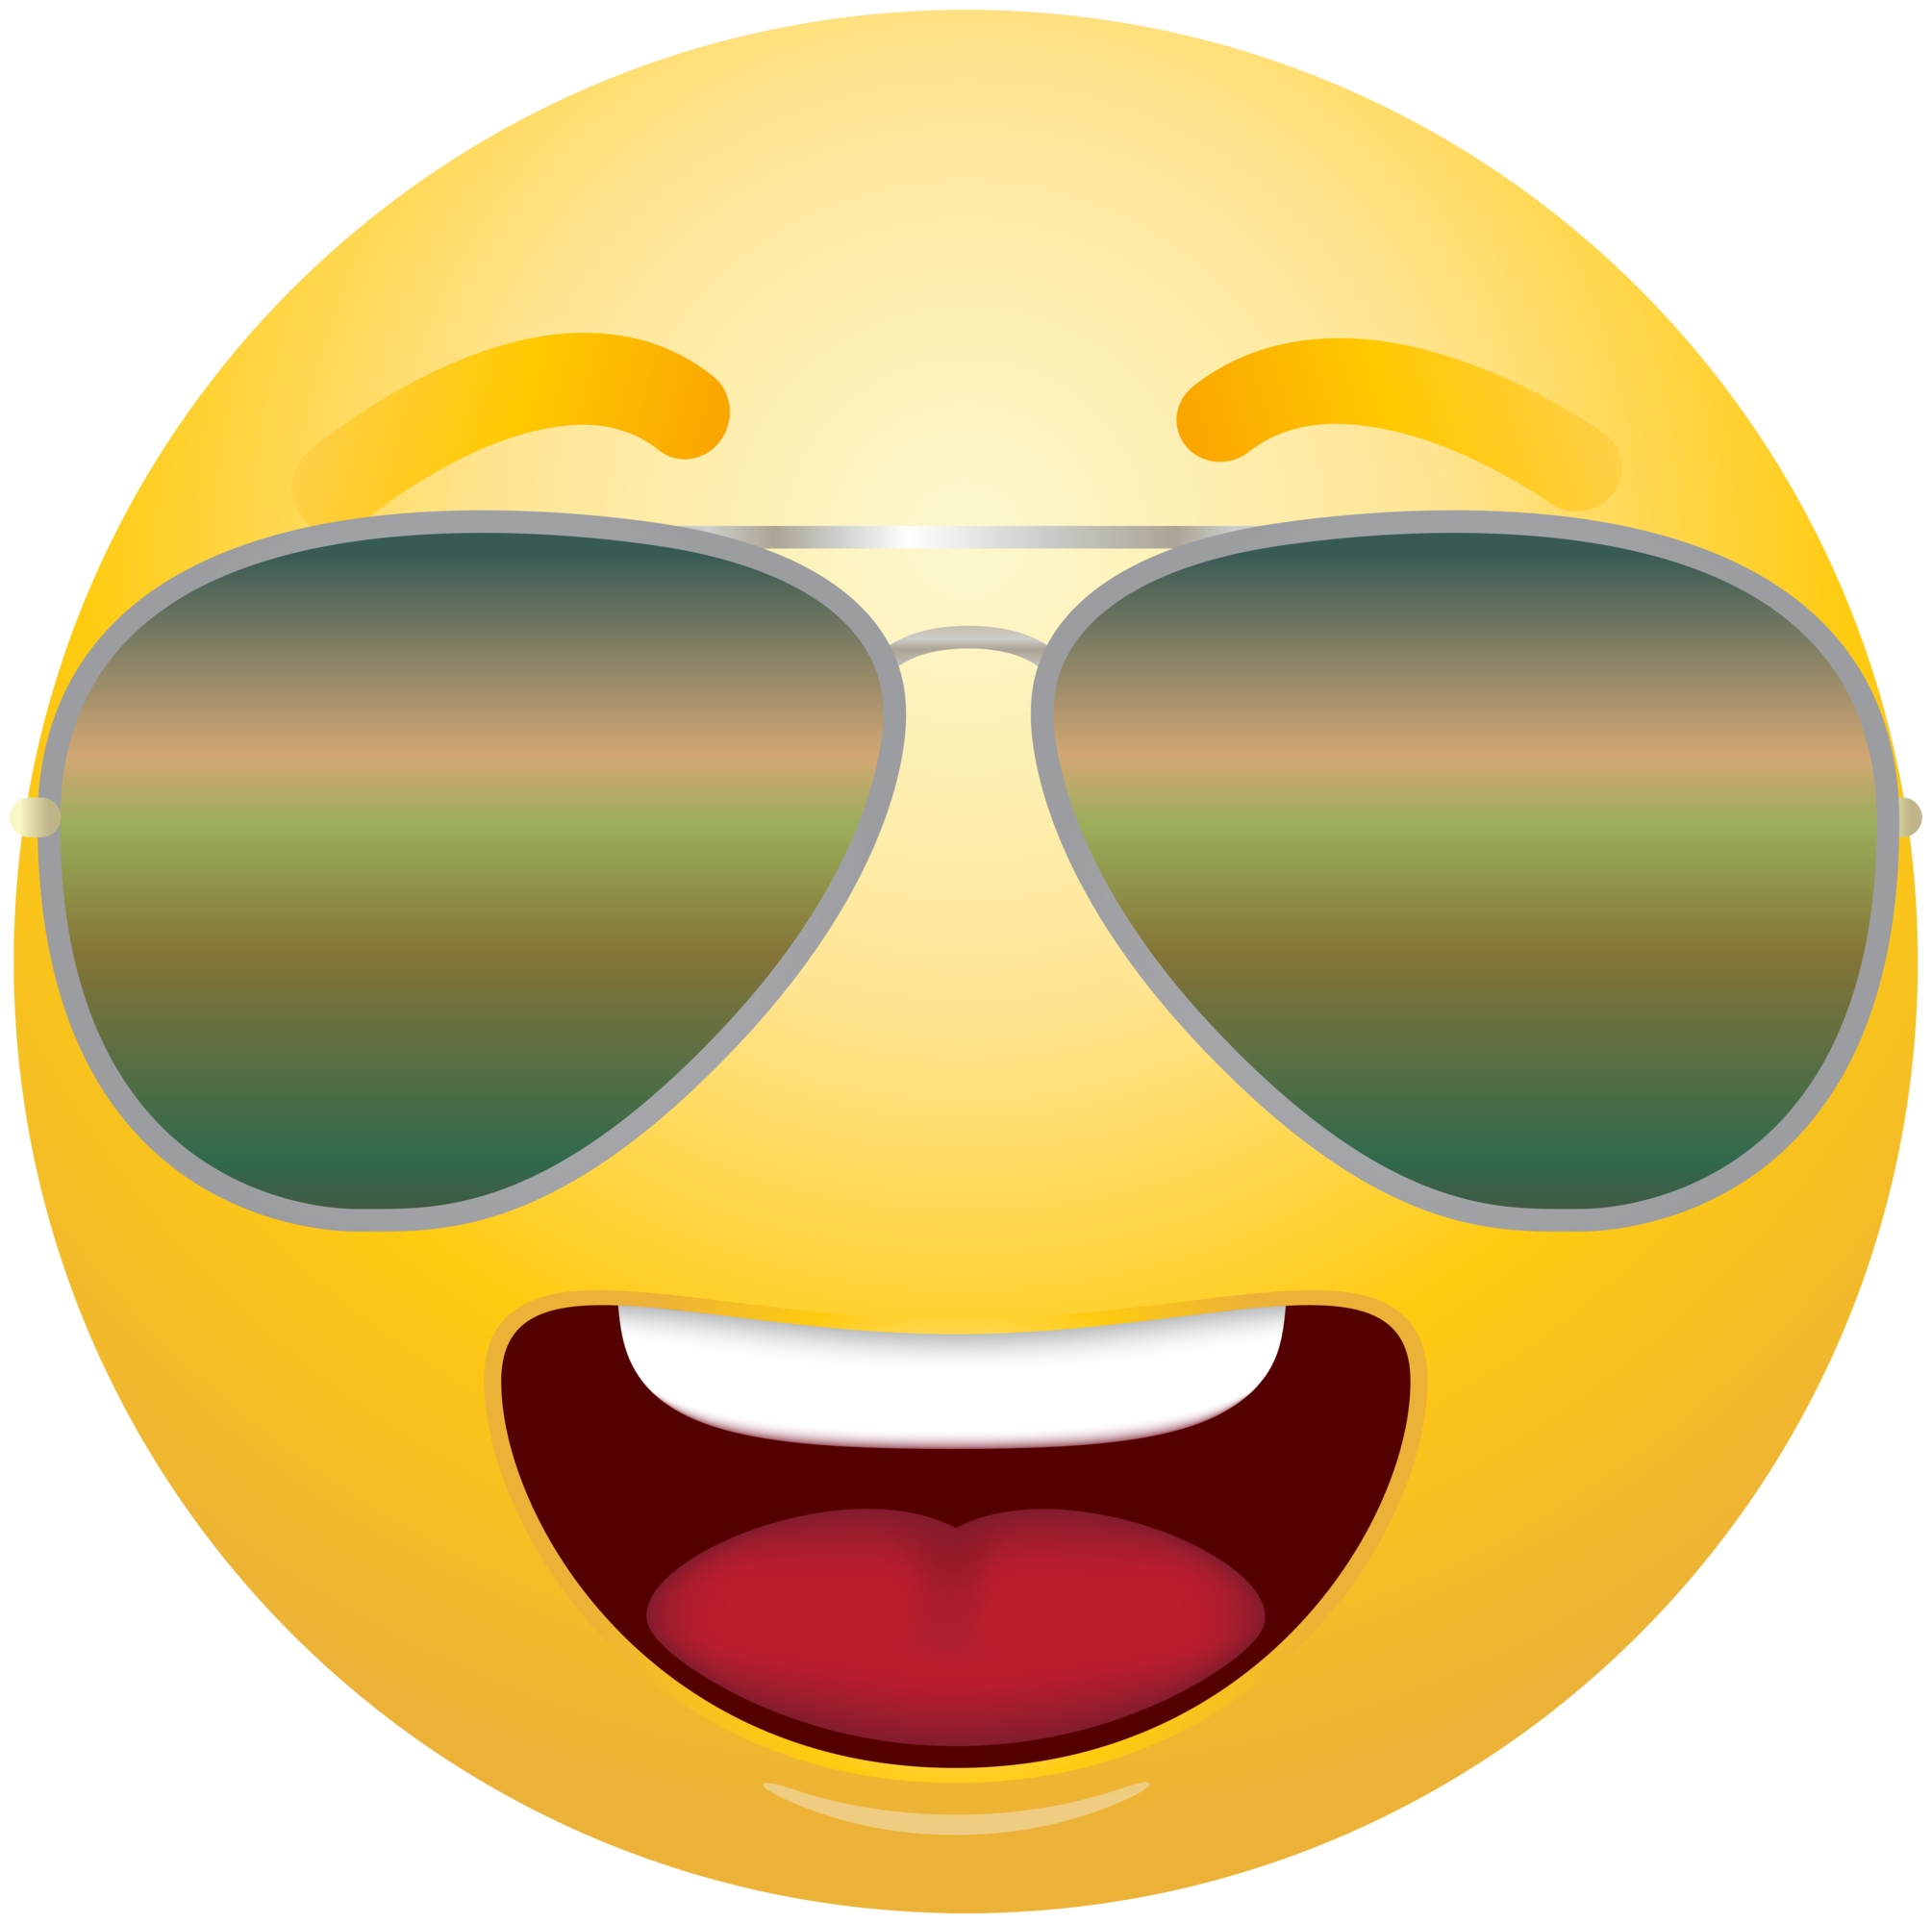 Emoticon Emoji With Sunglasses Clipart Info Clip Art Sunglasses Emoticon